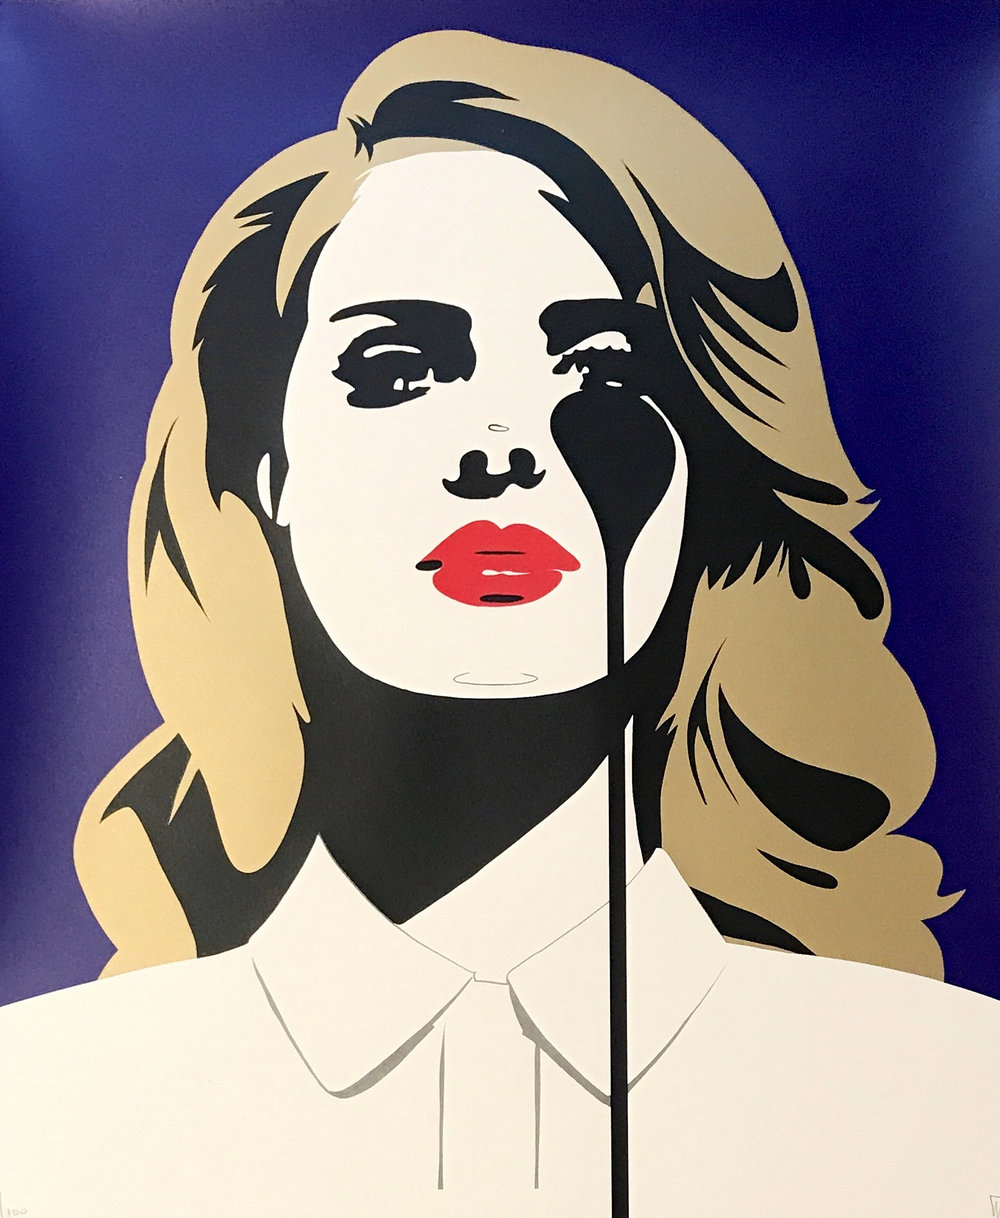 Cindy Lisica Gallery - Charles Uzzell Edwards AKA PURE EVIL - _Lana Del Rey - American Icon_ - 33.5 x 27.5 inches - silkscreen print - edition of 100 - 2018 - $400.jpg